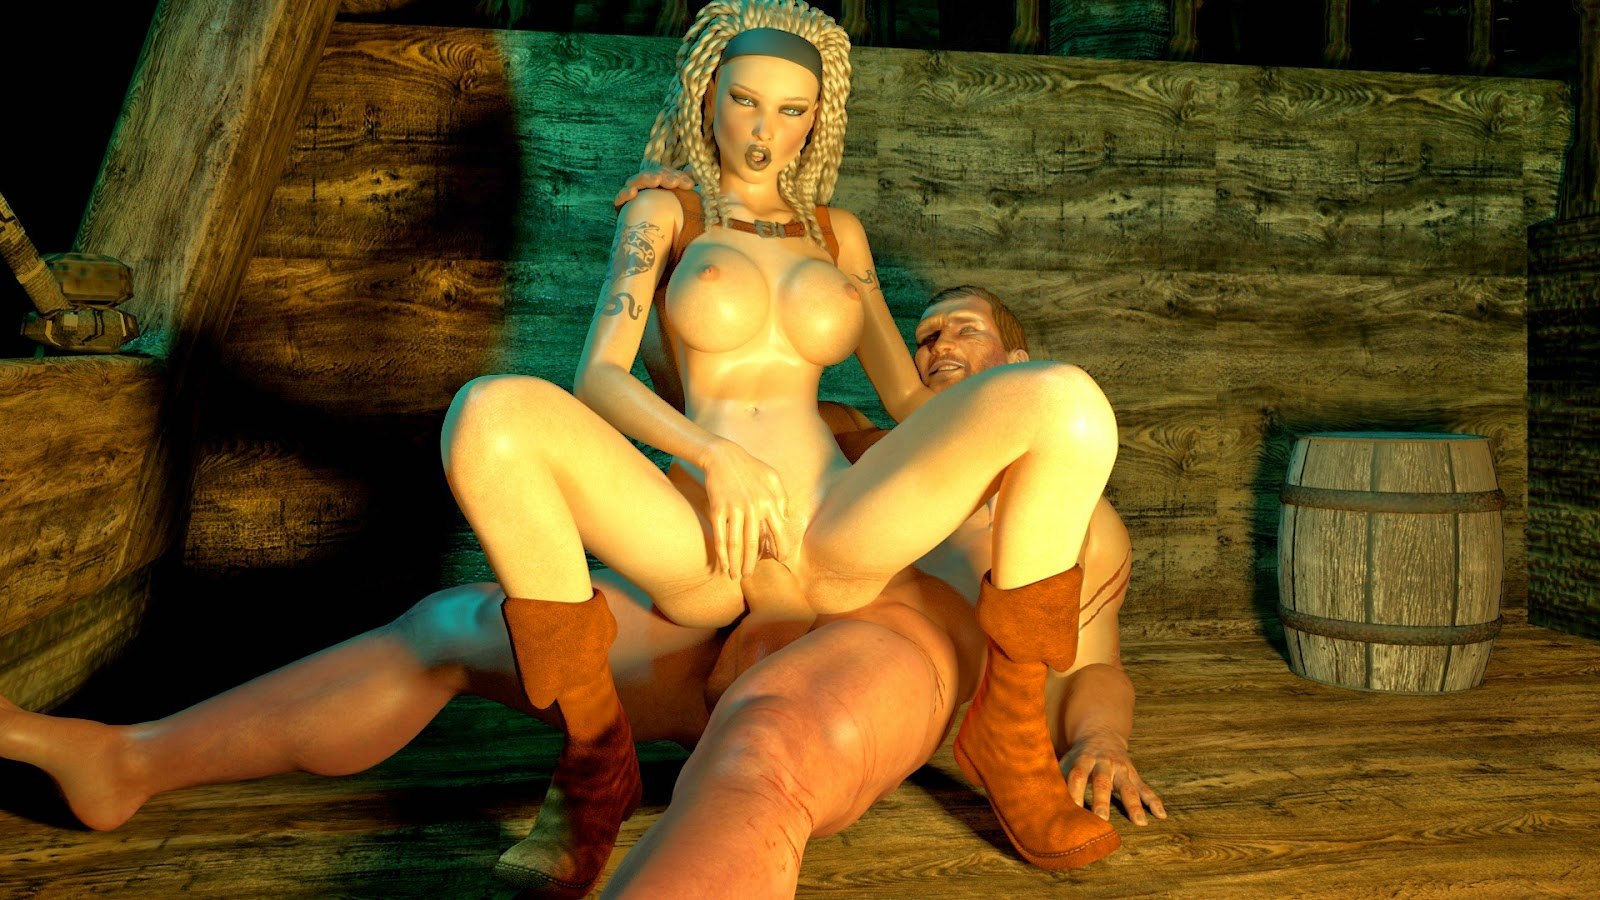 Mmorpg porno pics anime photos